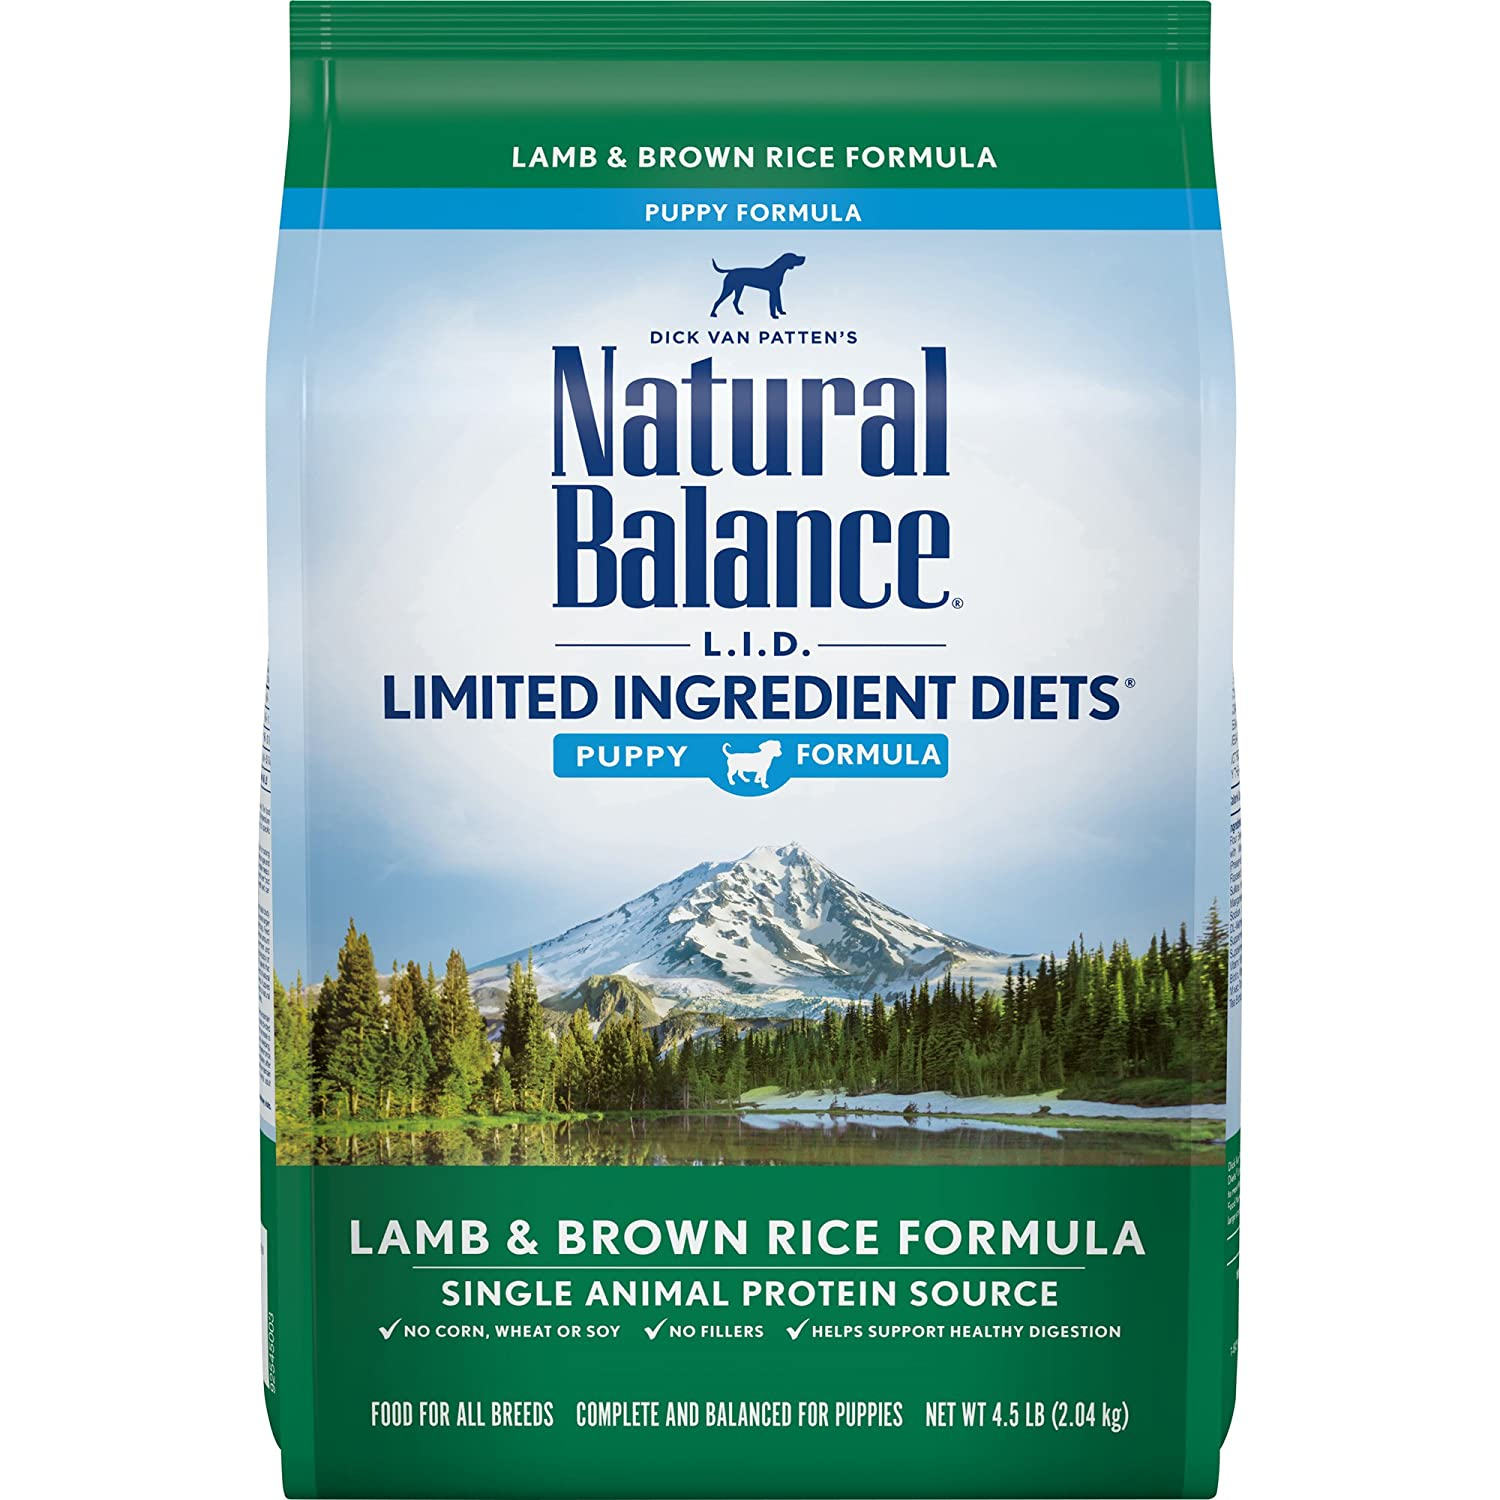 Natural Balance Puppy Formula L.I.D. Limited Ingredient Diets Dry Dog Food, Lamb & Brown Rice Formula, 4.5-Pound